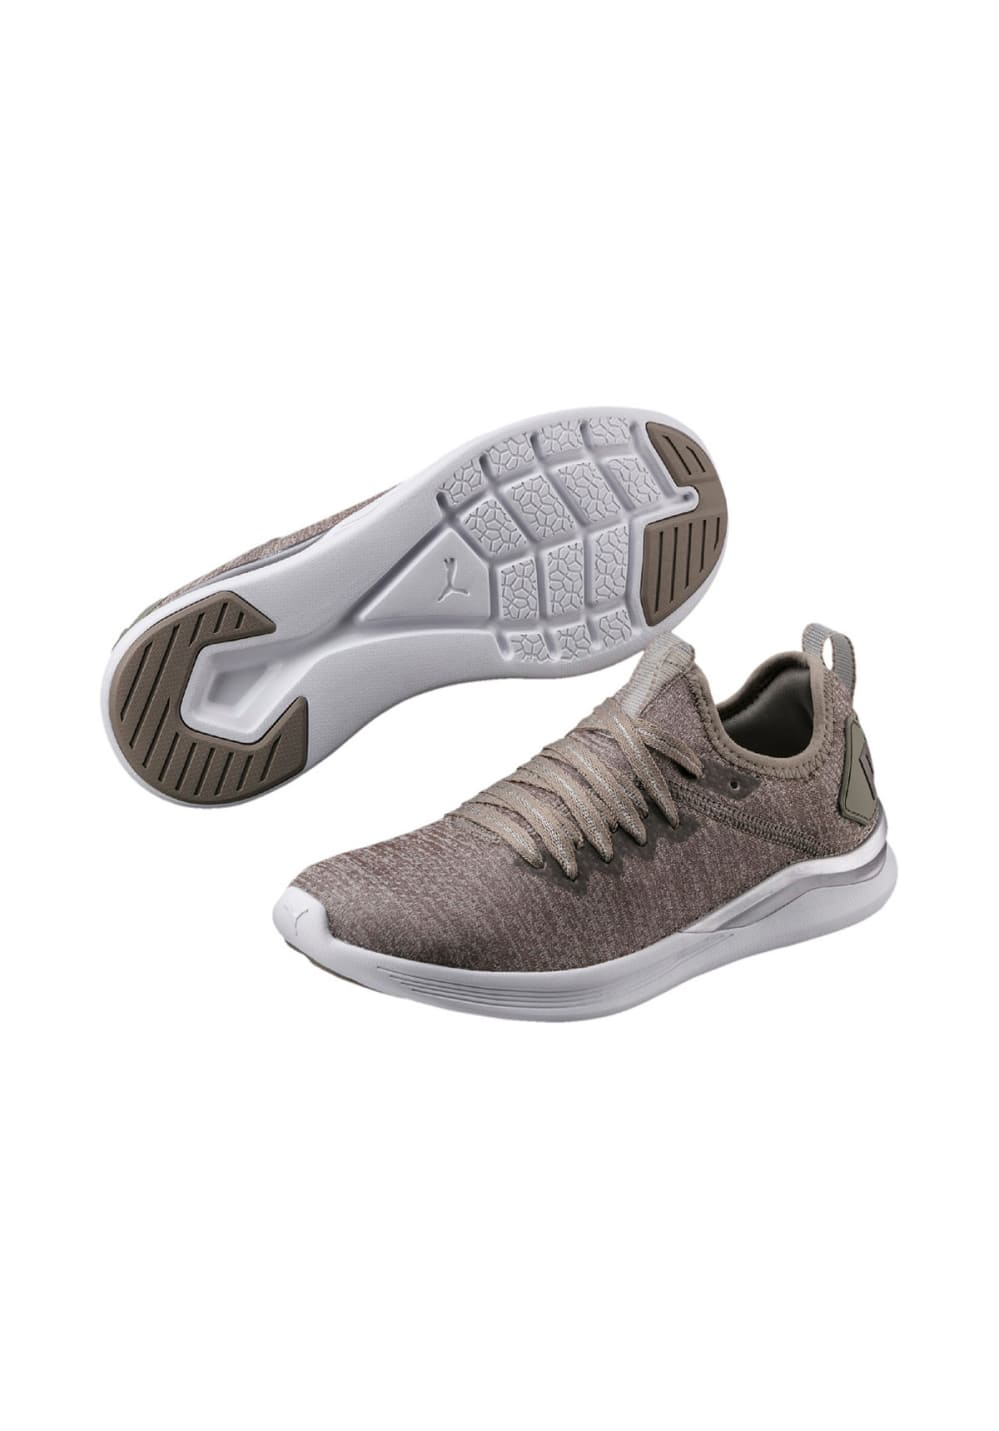 promo code 6bd51 04d49 Puma IGNITE Flash evoKNIT EP - Running shoes for Women - Brown